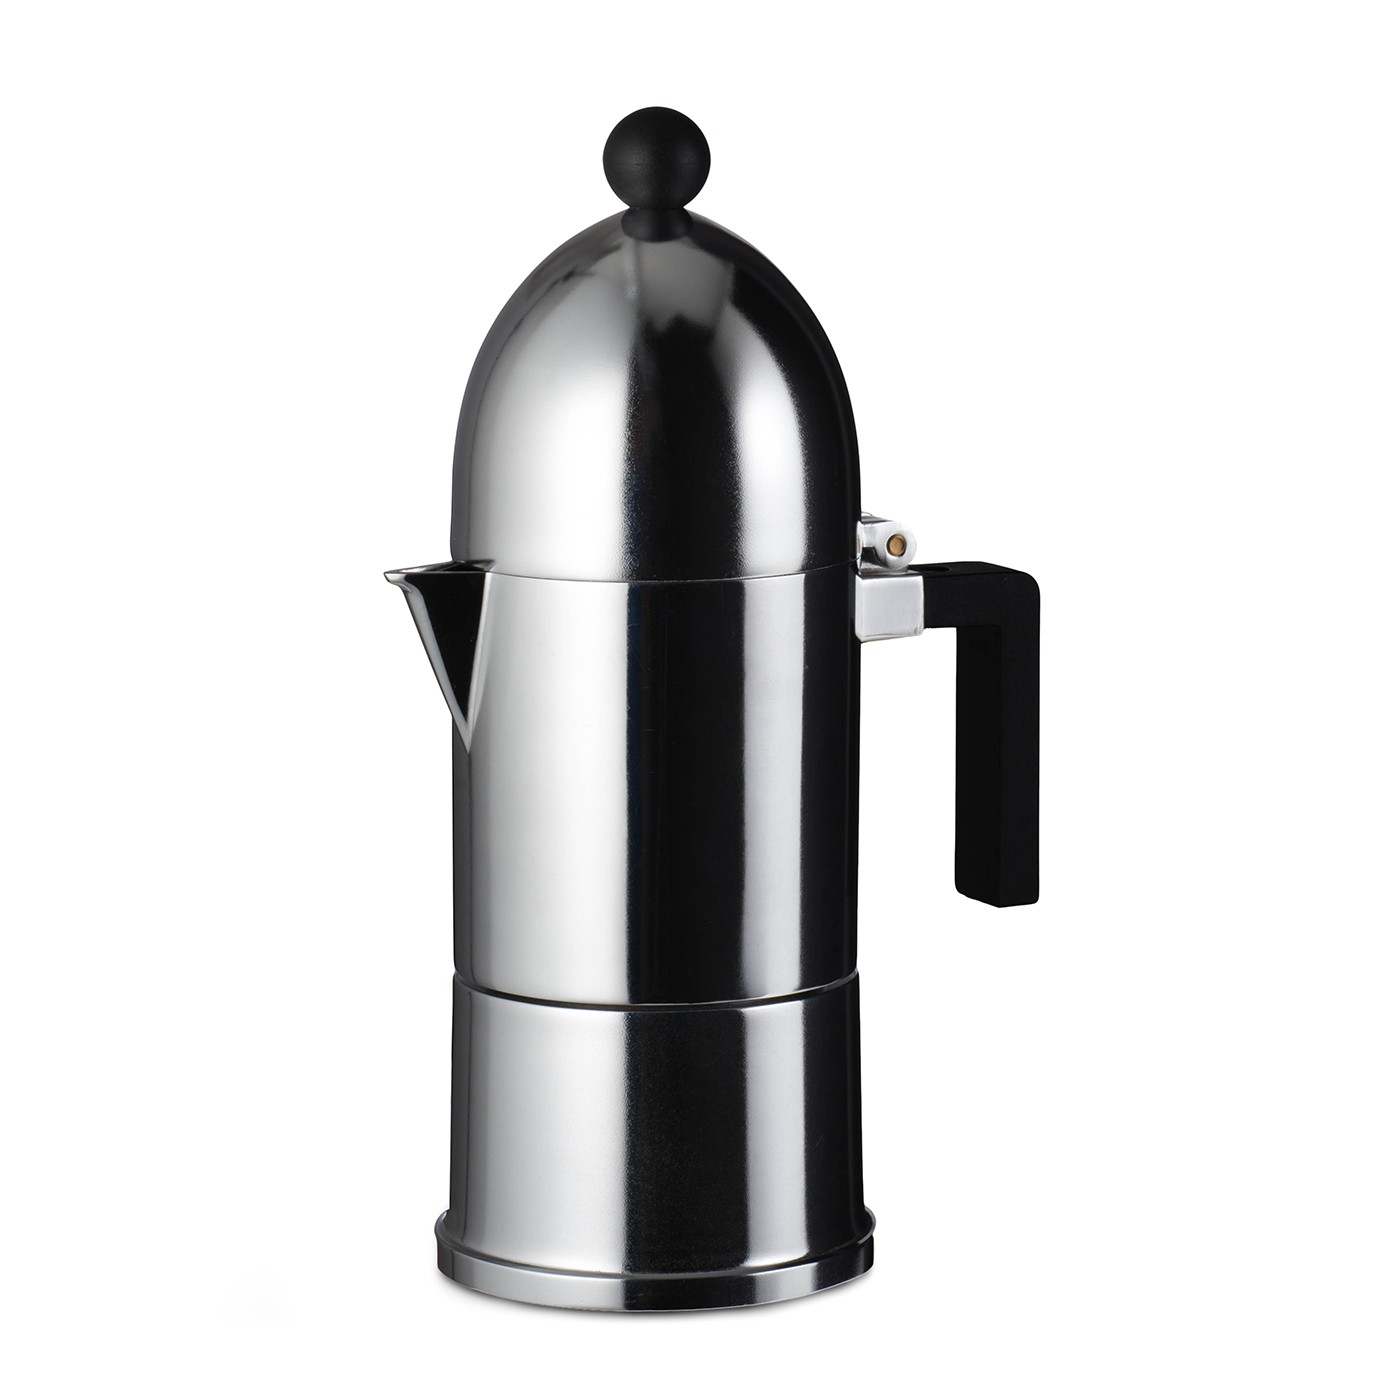 La Cupola Coffee Maker 6 Cups